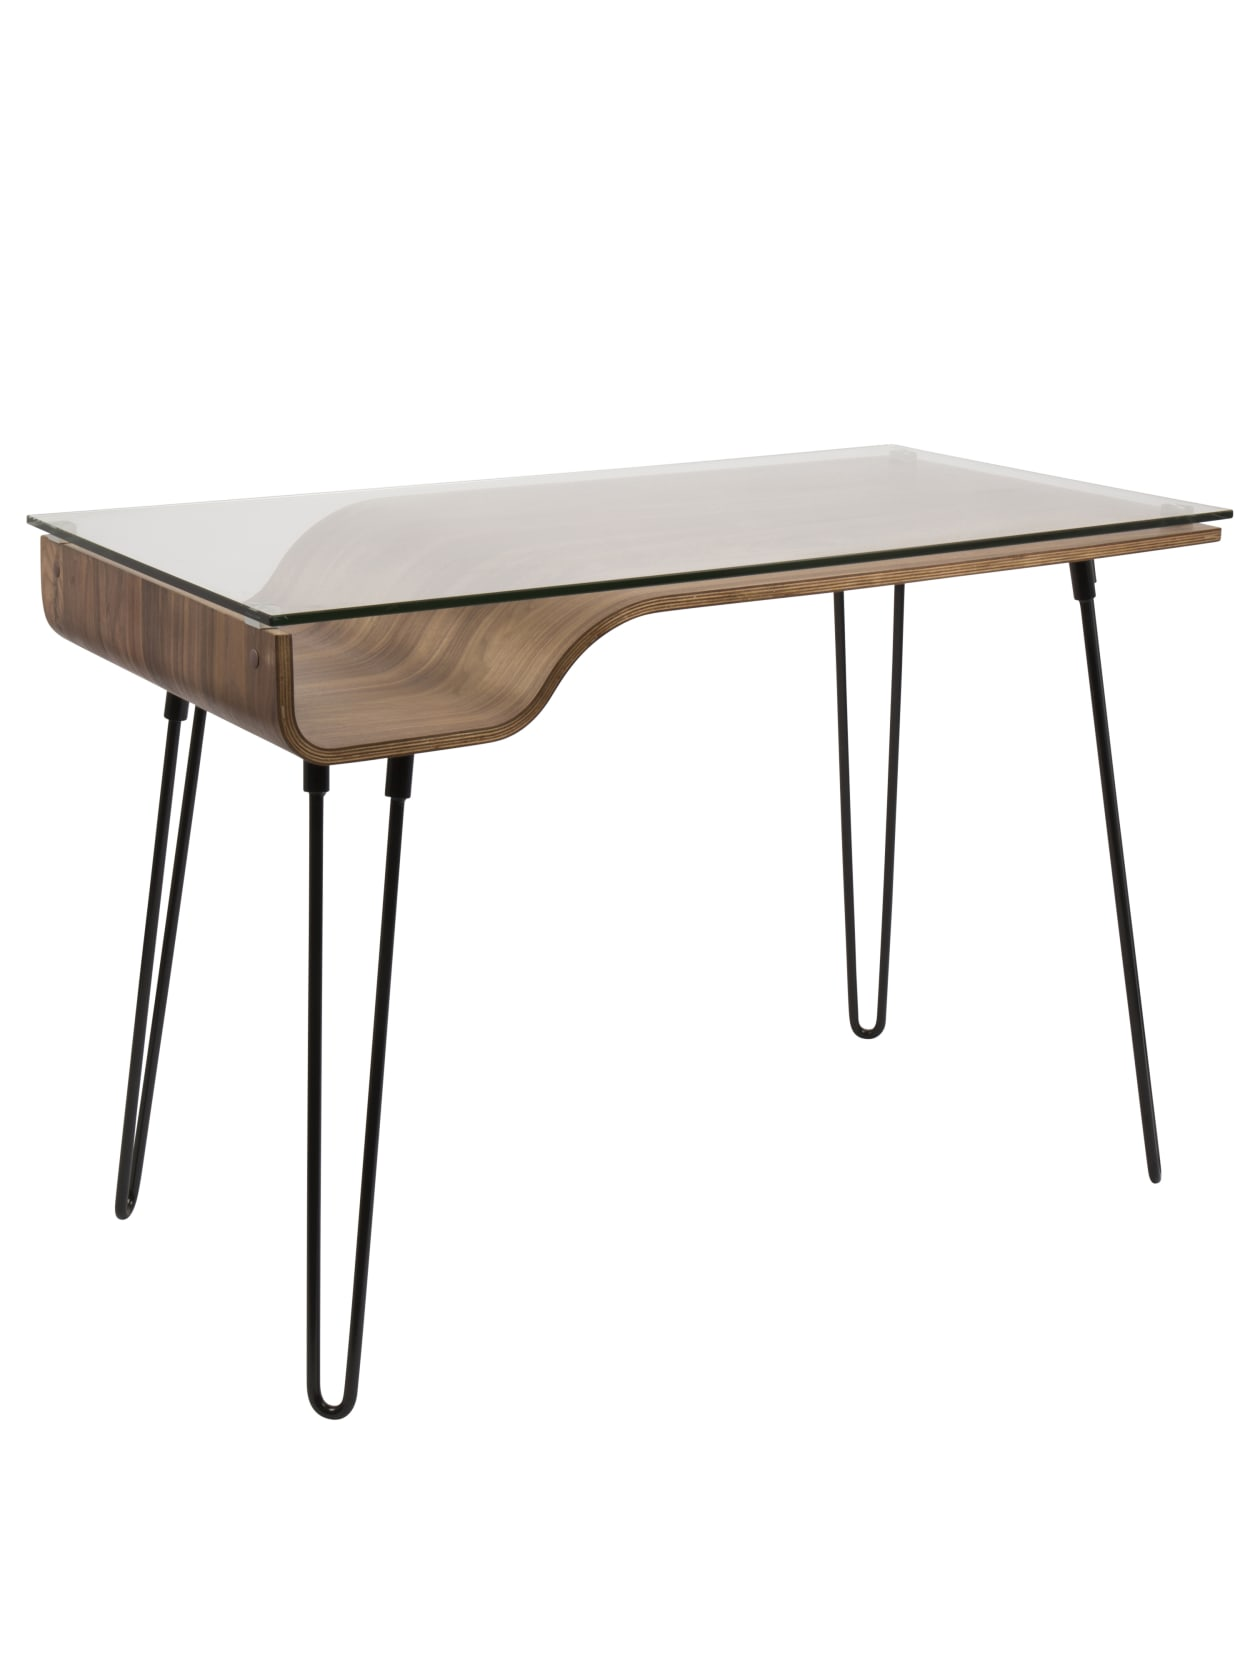 Image of: Lumisource Avery Mid Century Modern Desk Walnutblack Office Depot